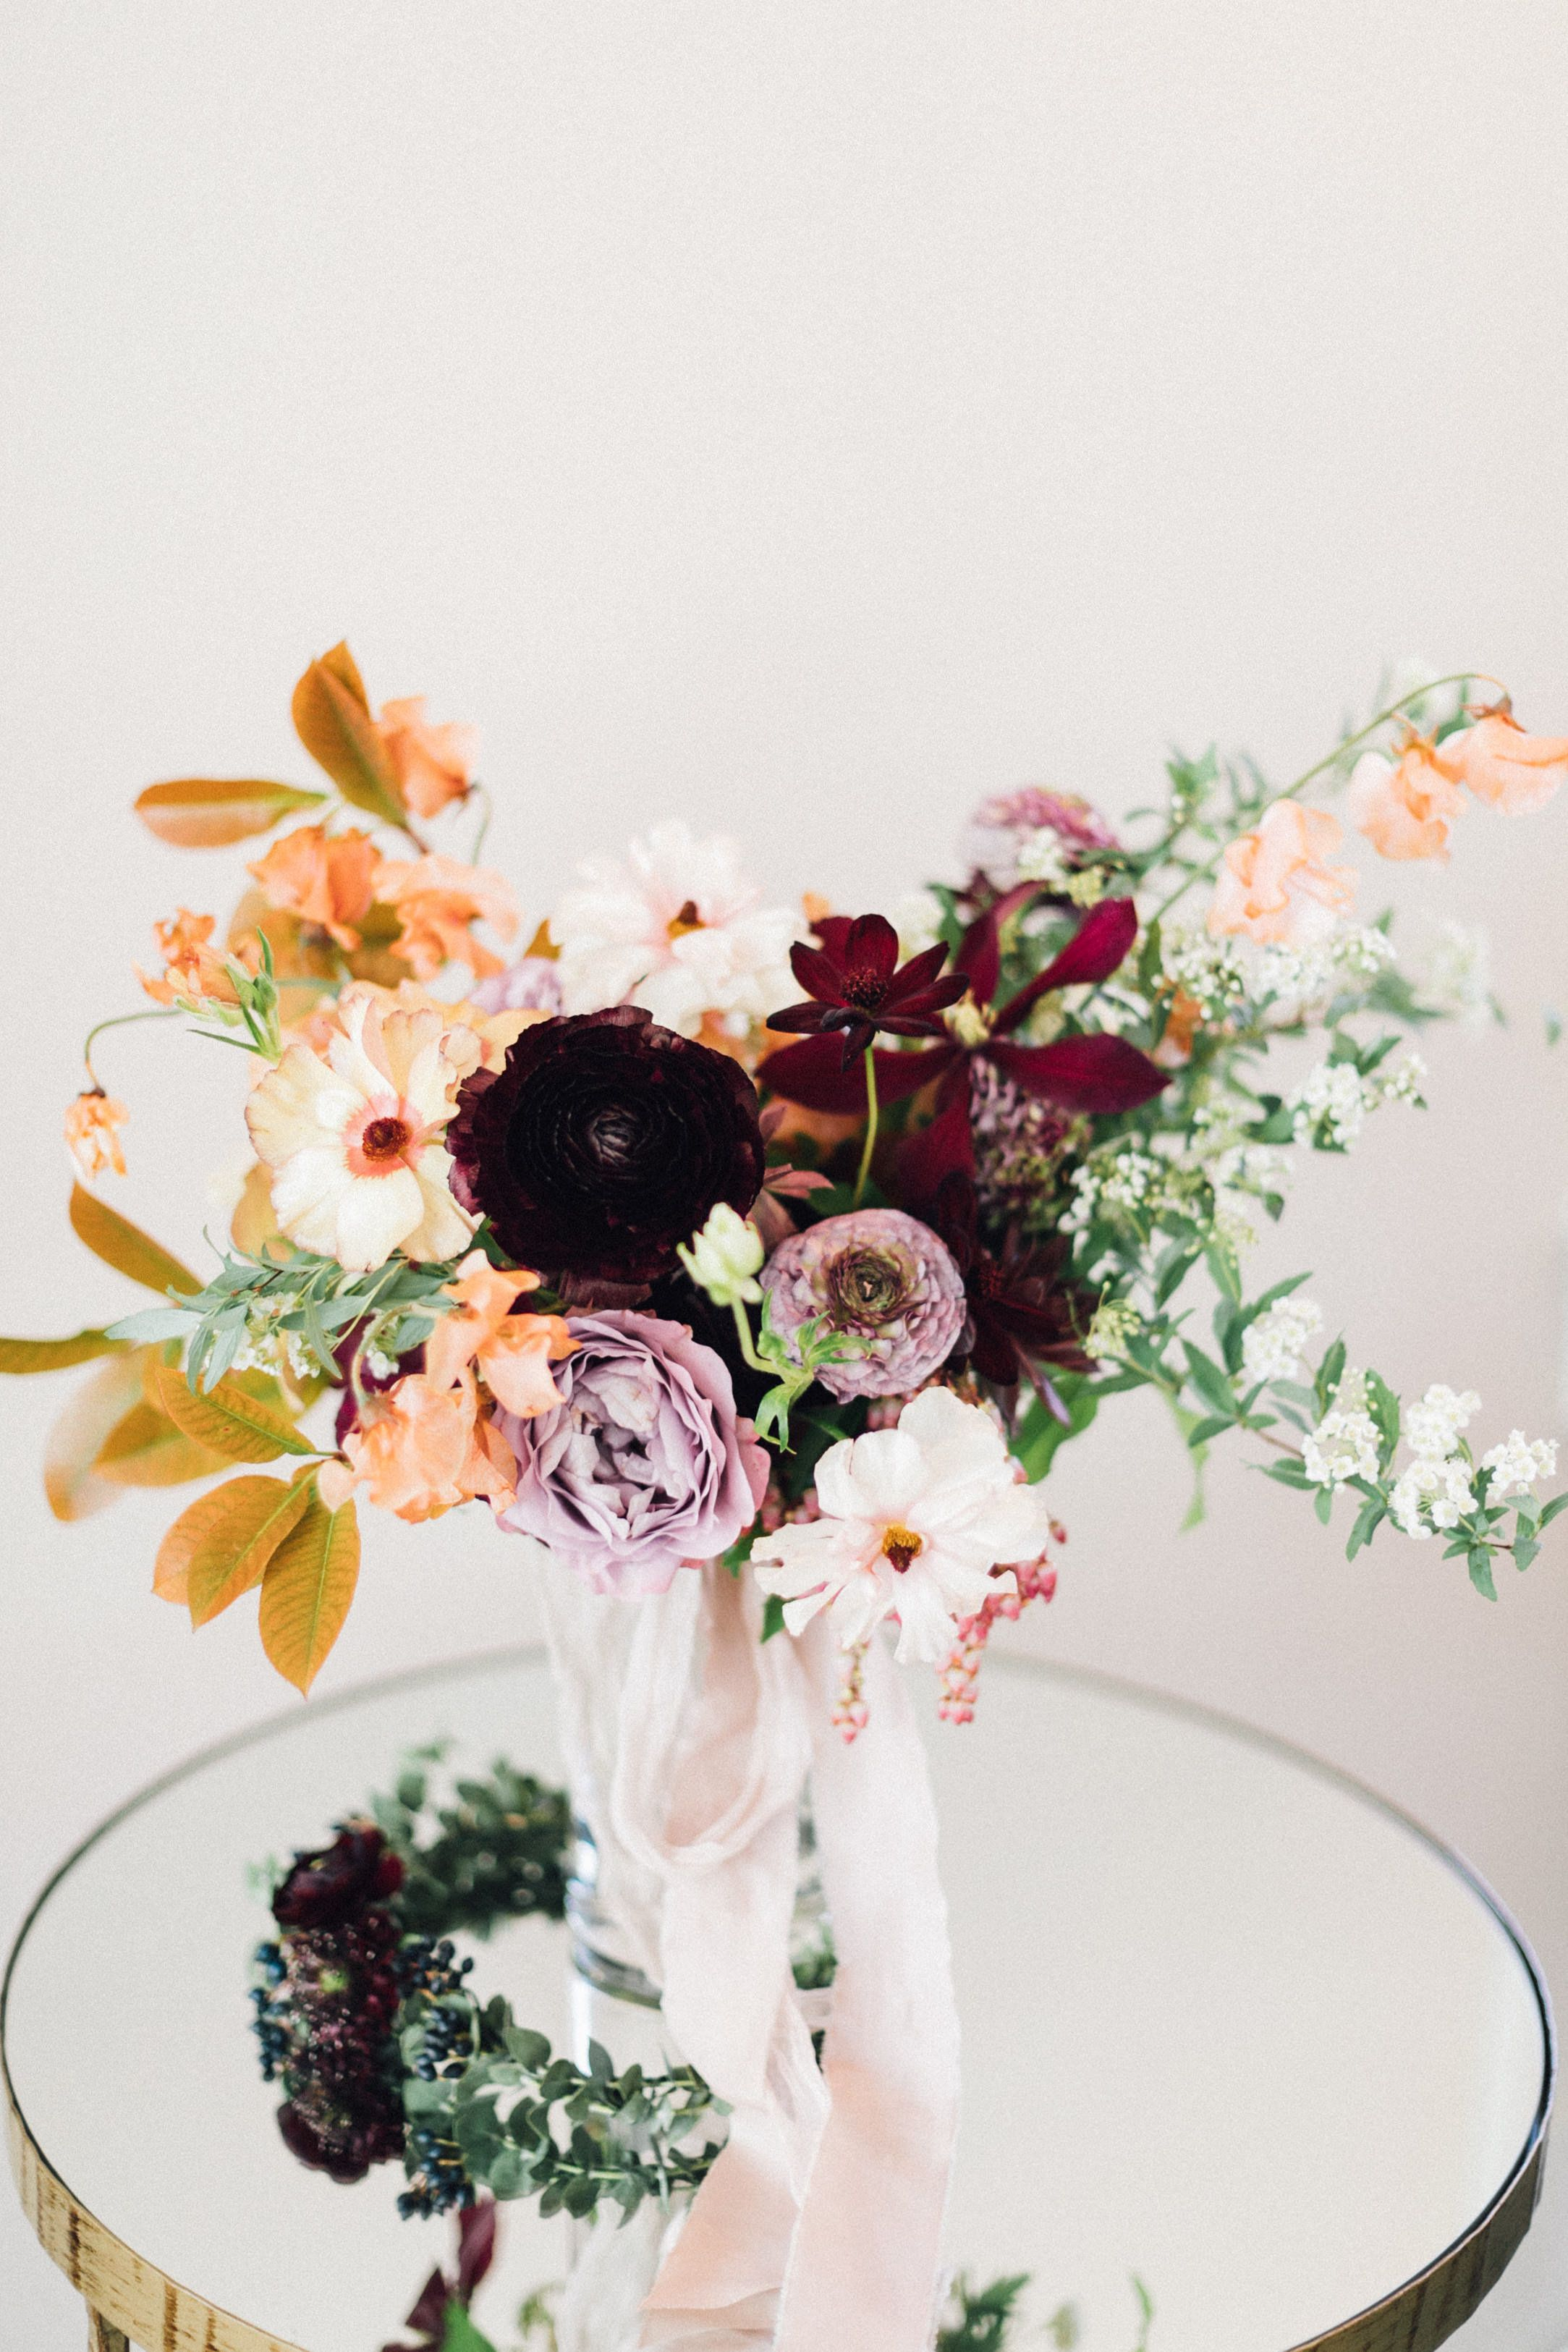 The greenhouse collective - Floral By Color Theory Collective Photo By Feather Twine Photography Venue The